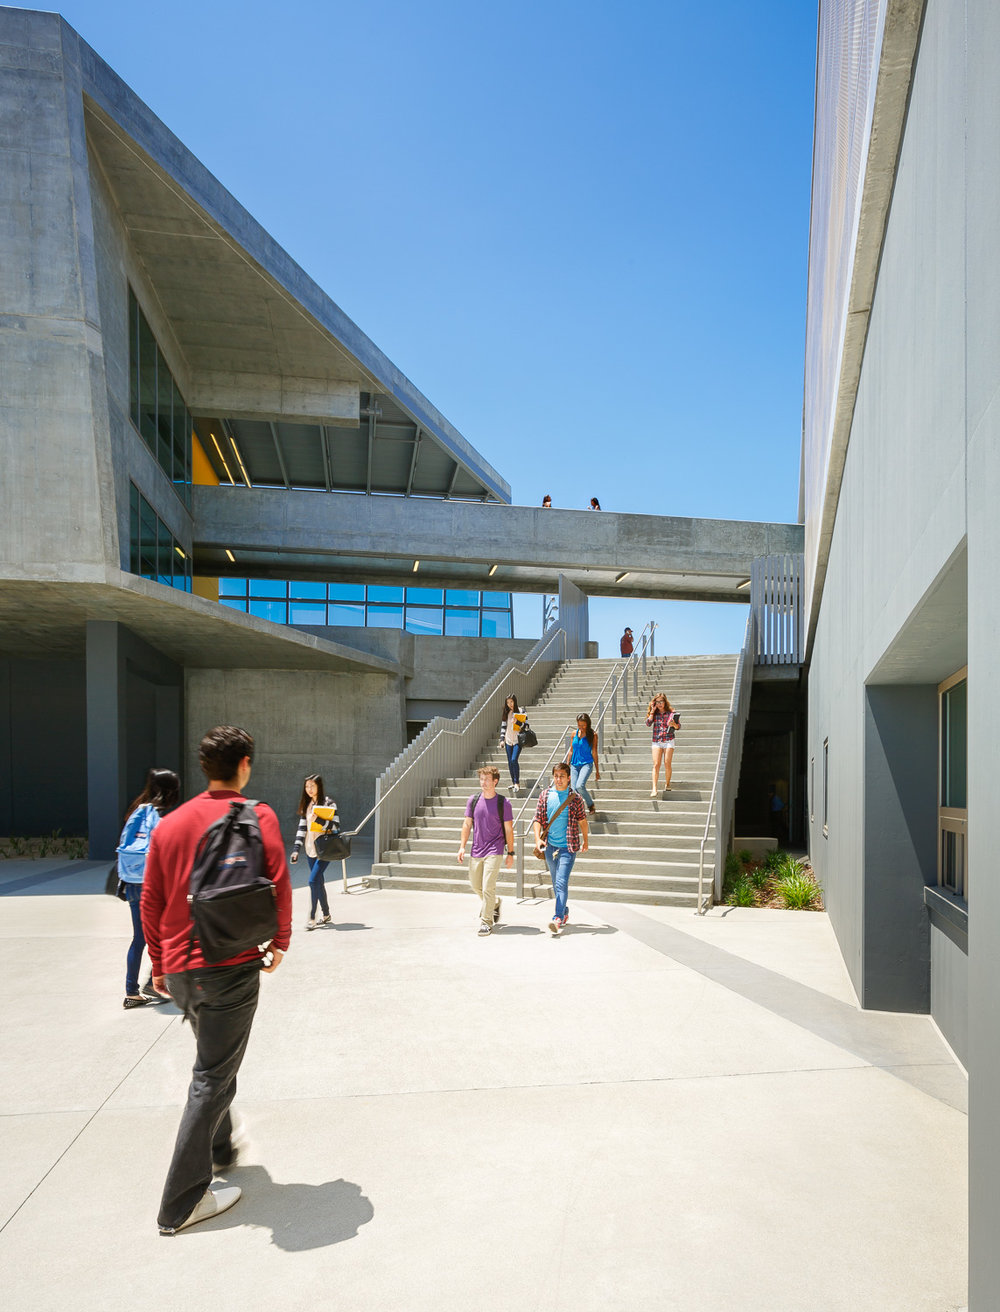 005 Newport Beach Learning Center.jpg